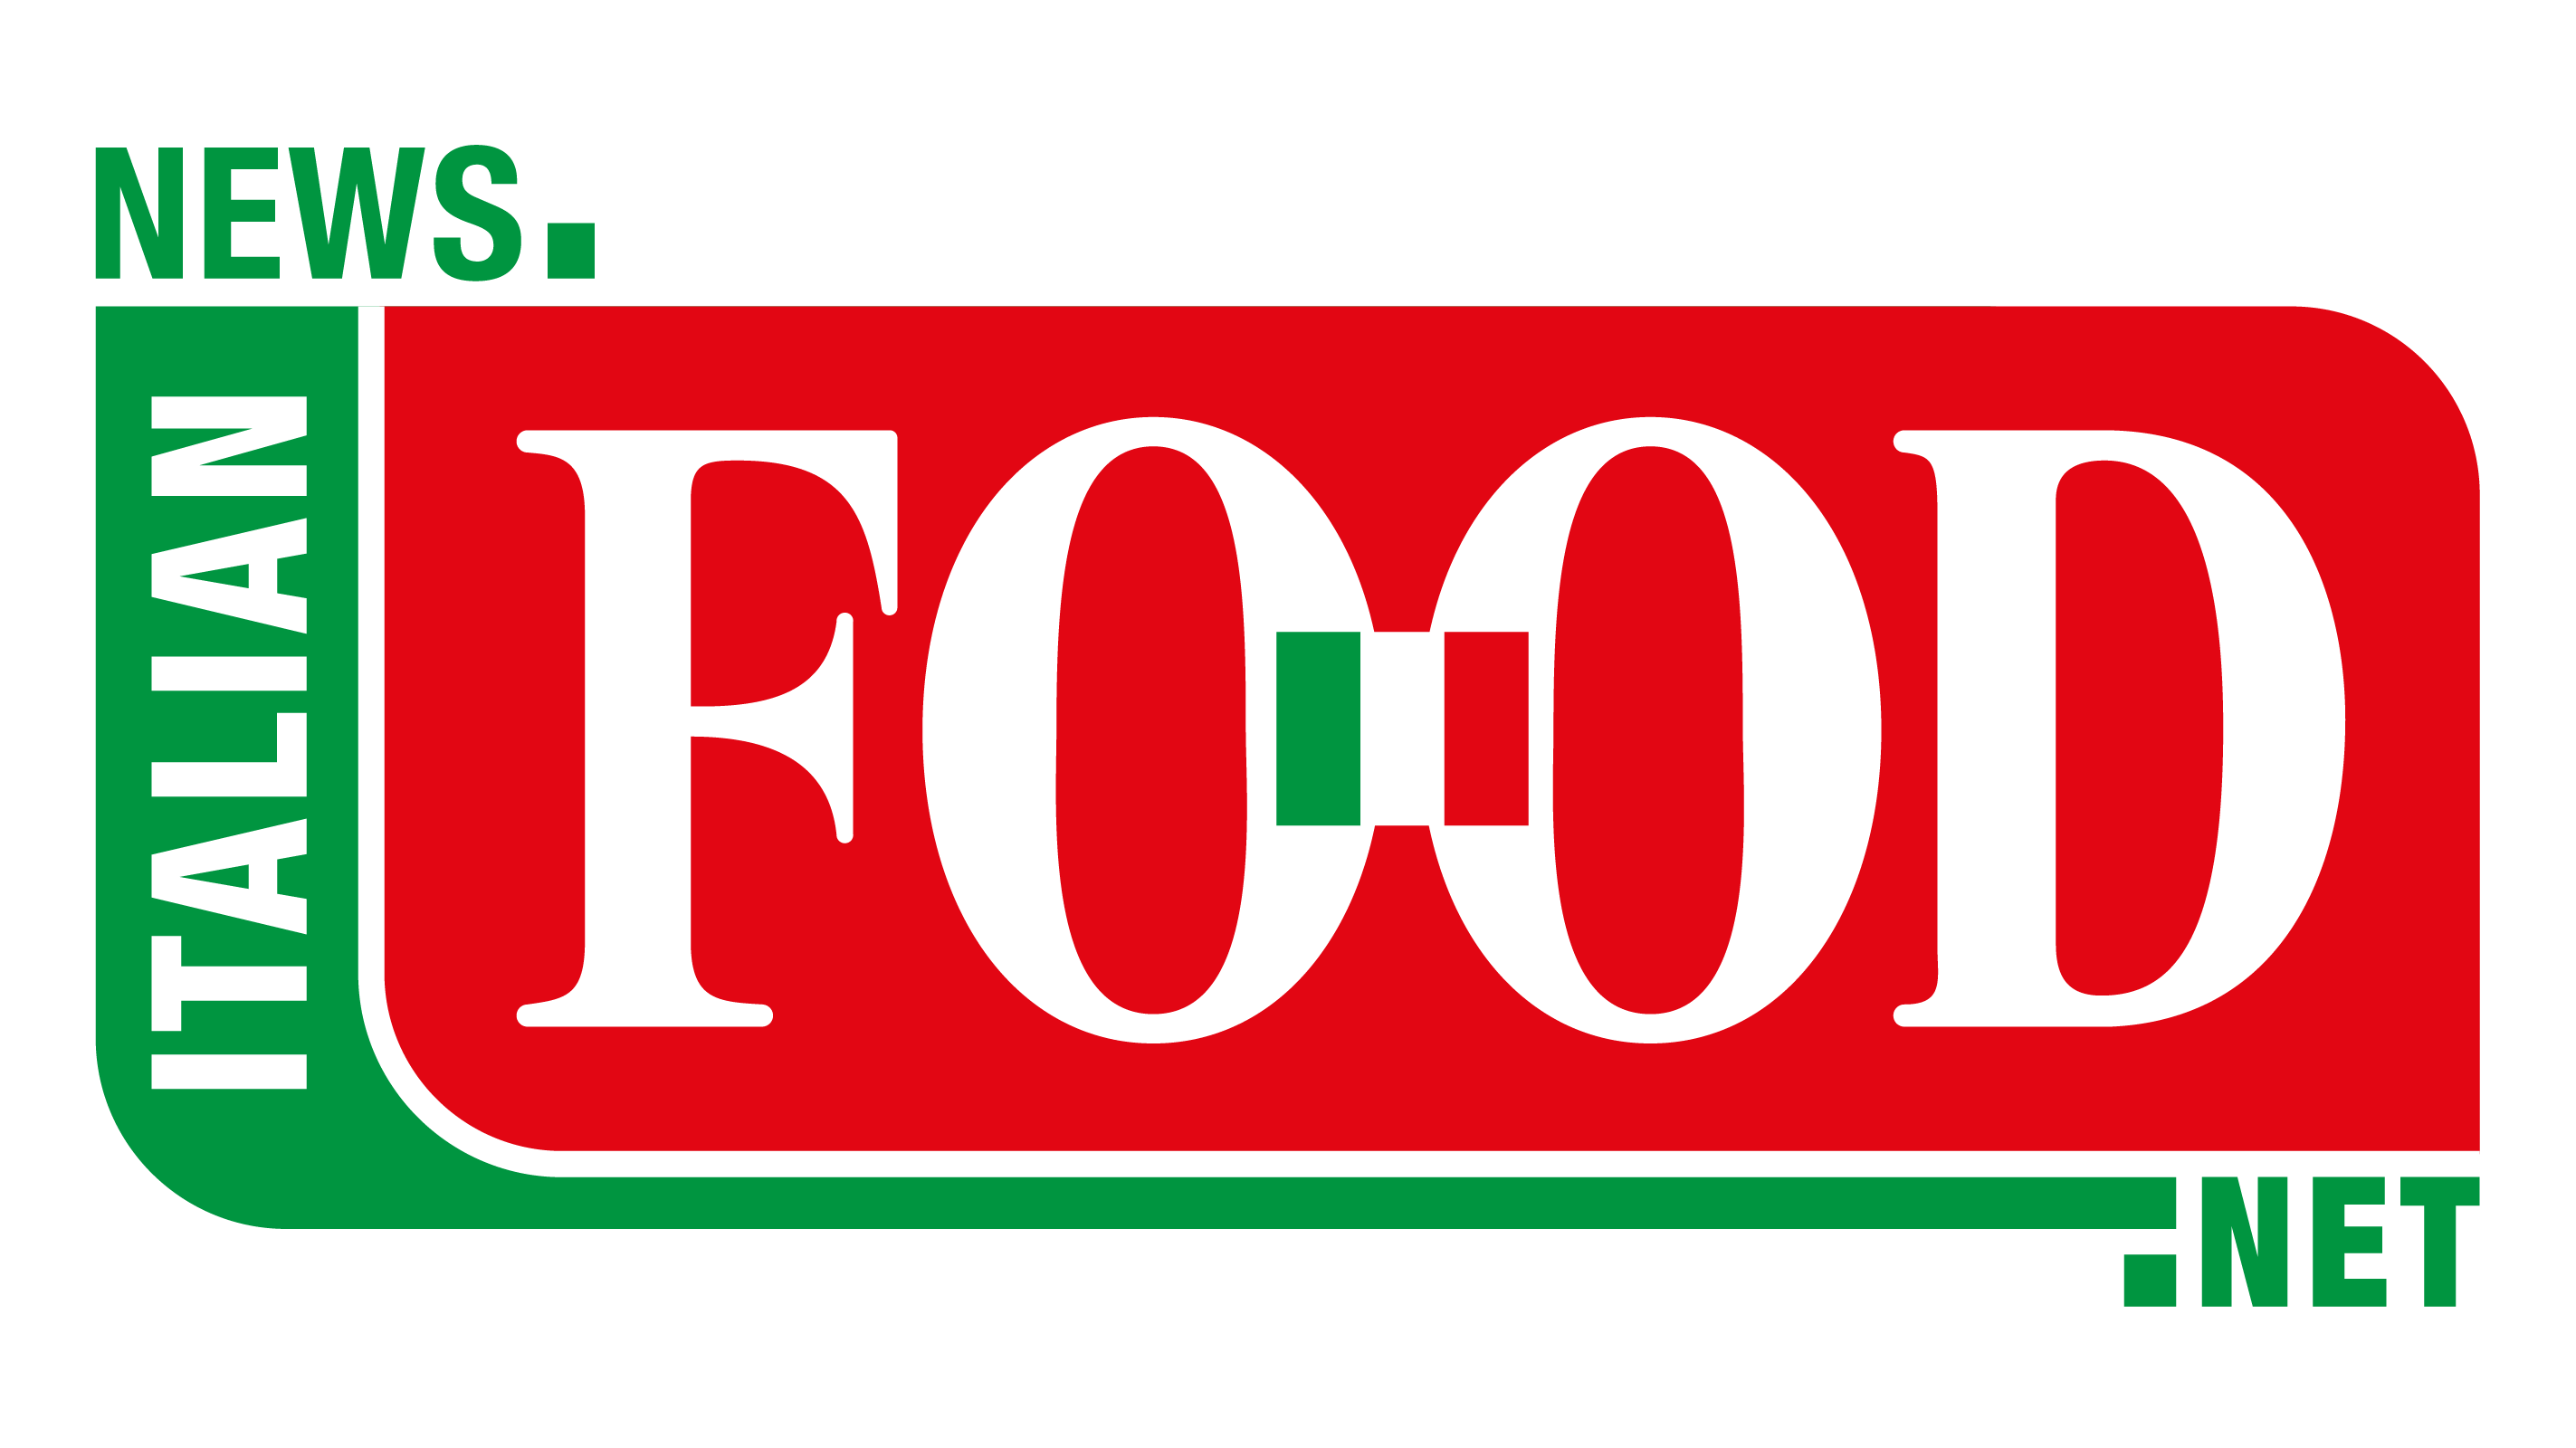 ItalianFOOD.net